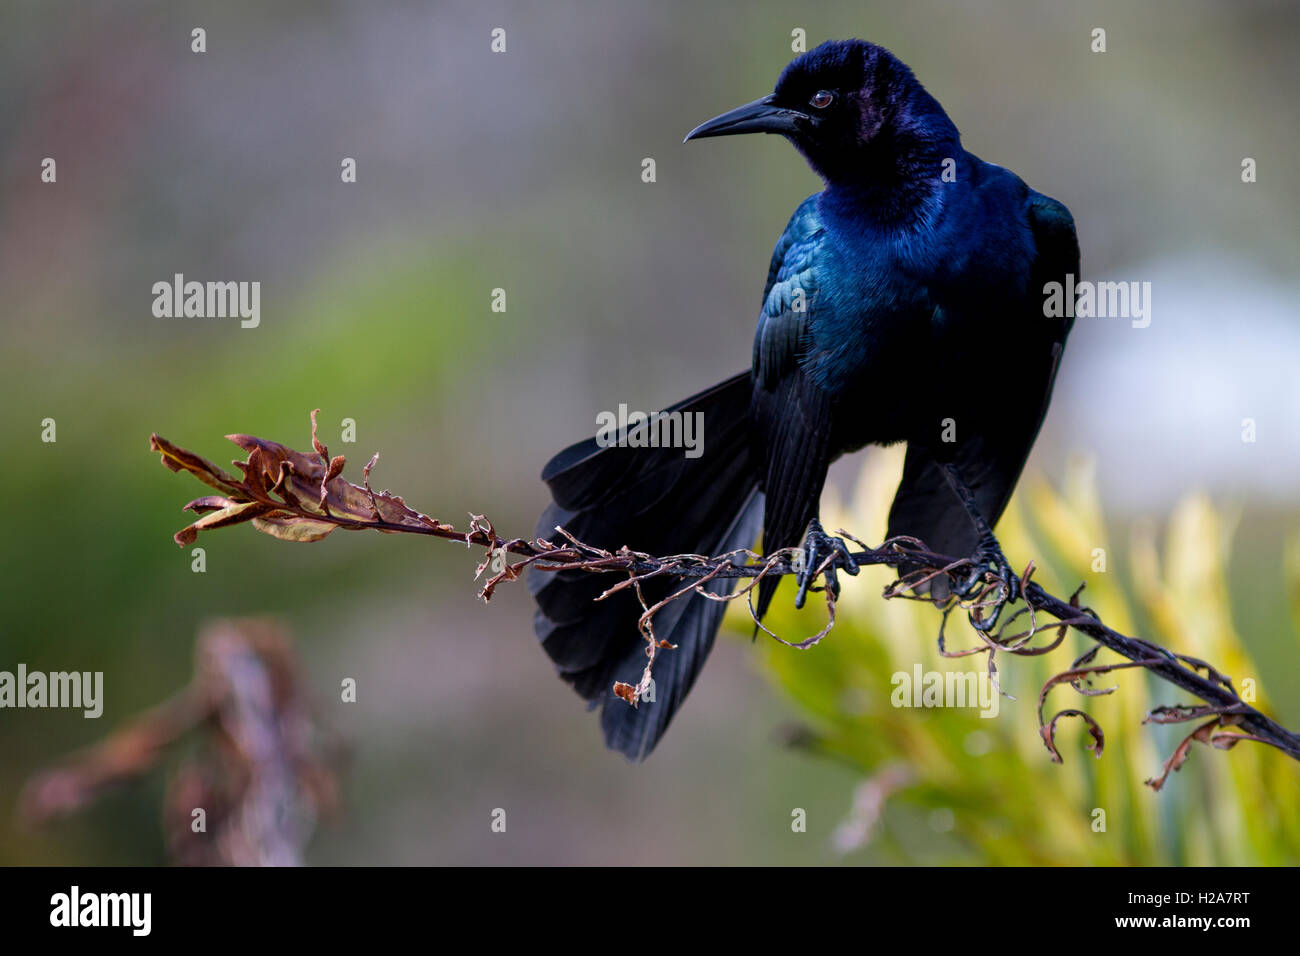 A Boat-Tailed Grackle perched on a dried frond is striking with velvety iridescence against wetland greens and yellows. - Stock Image